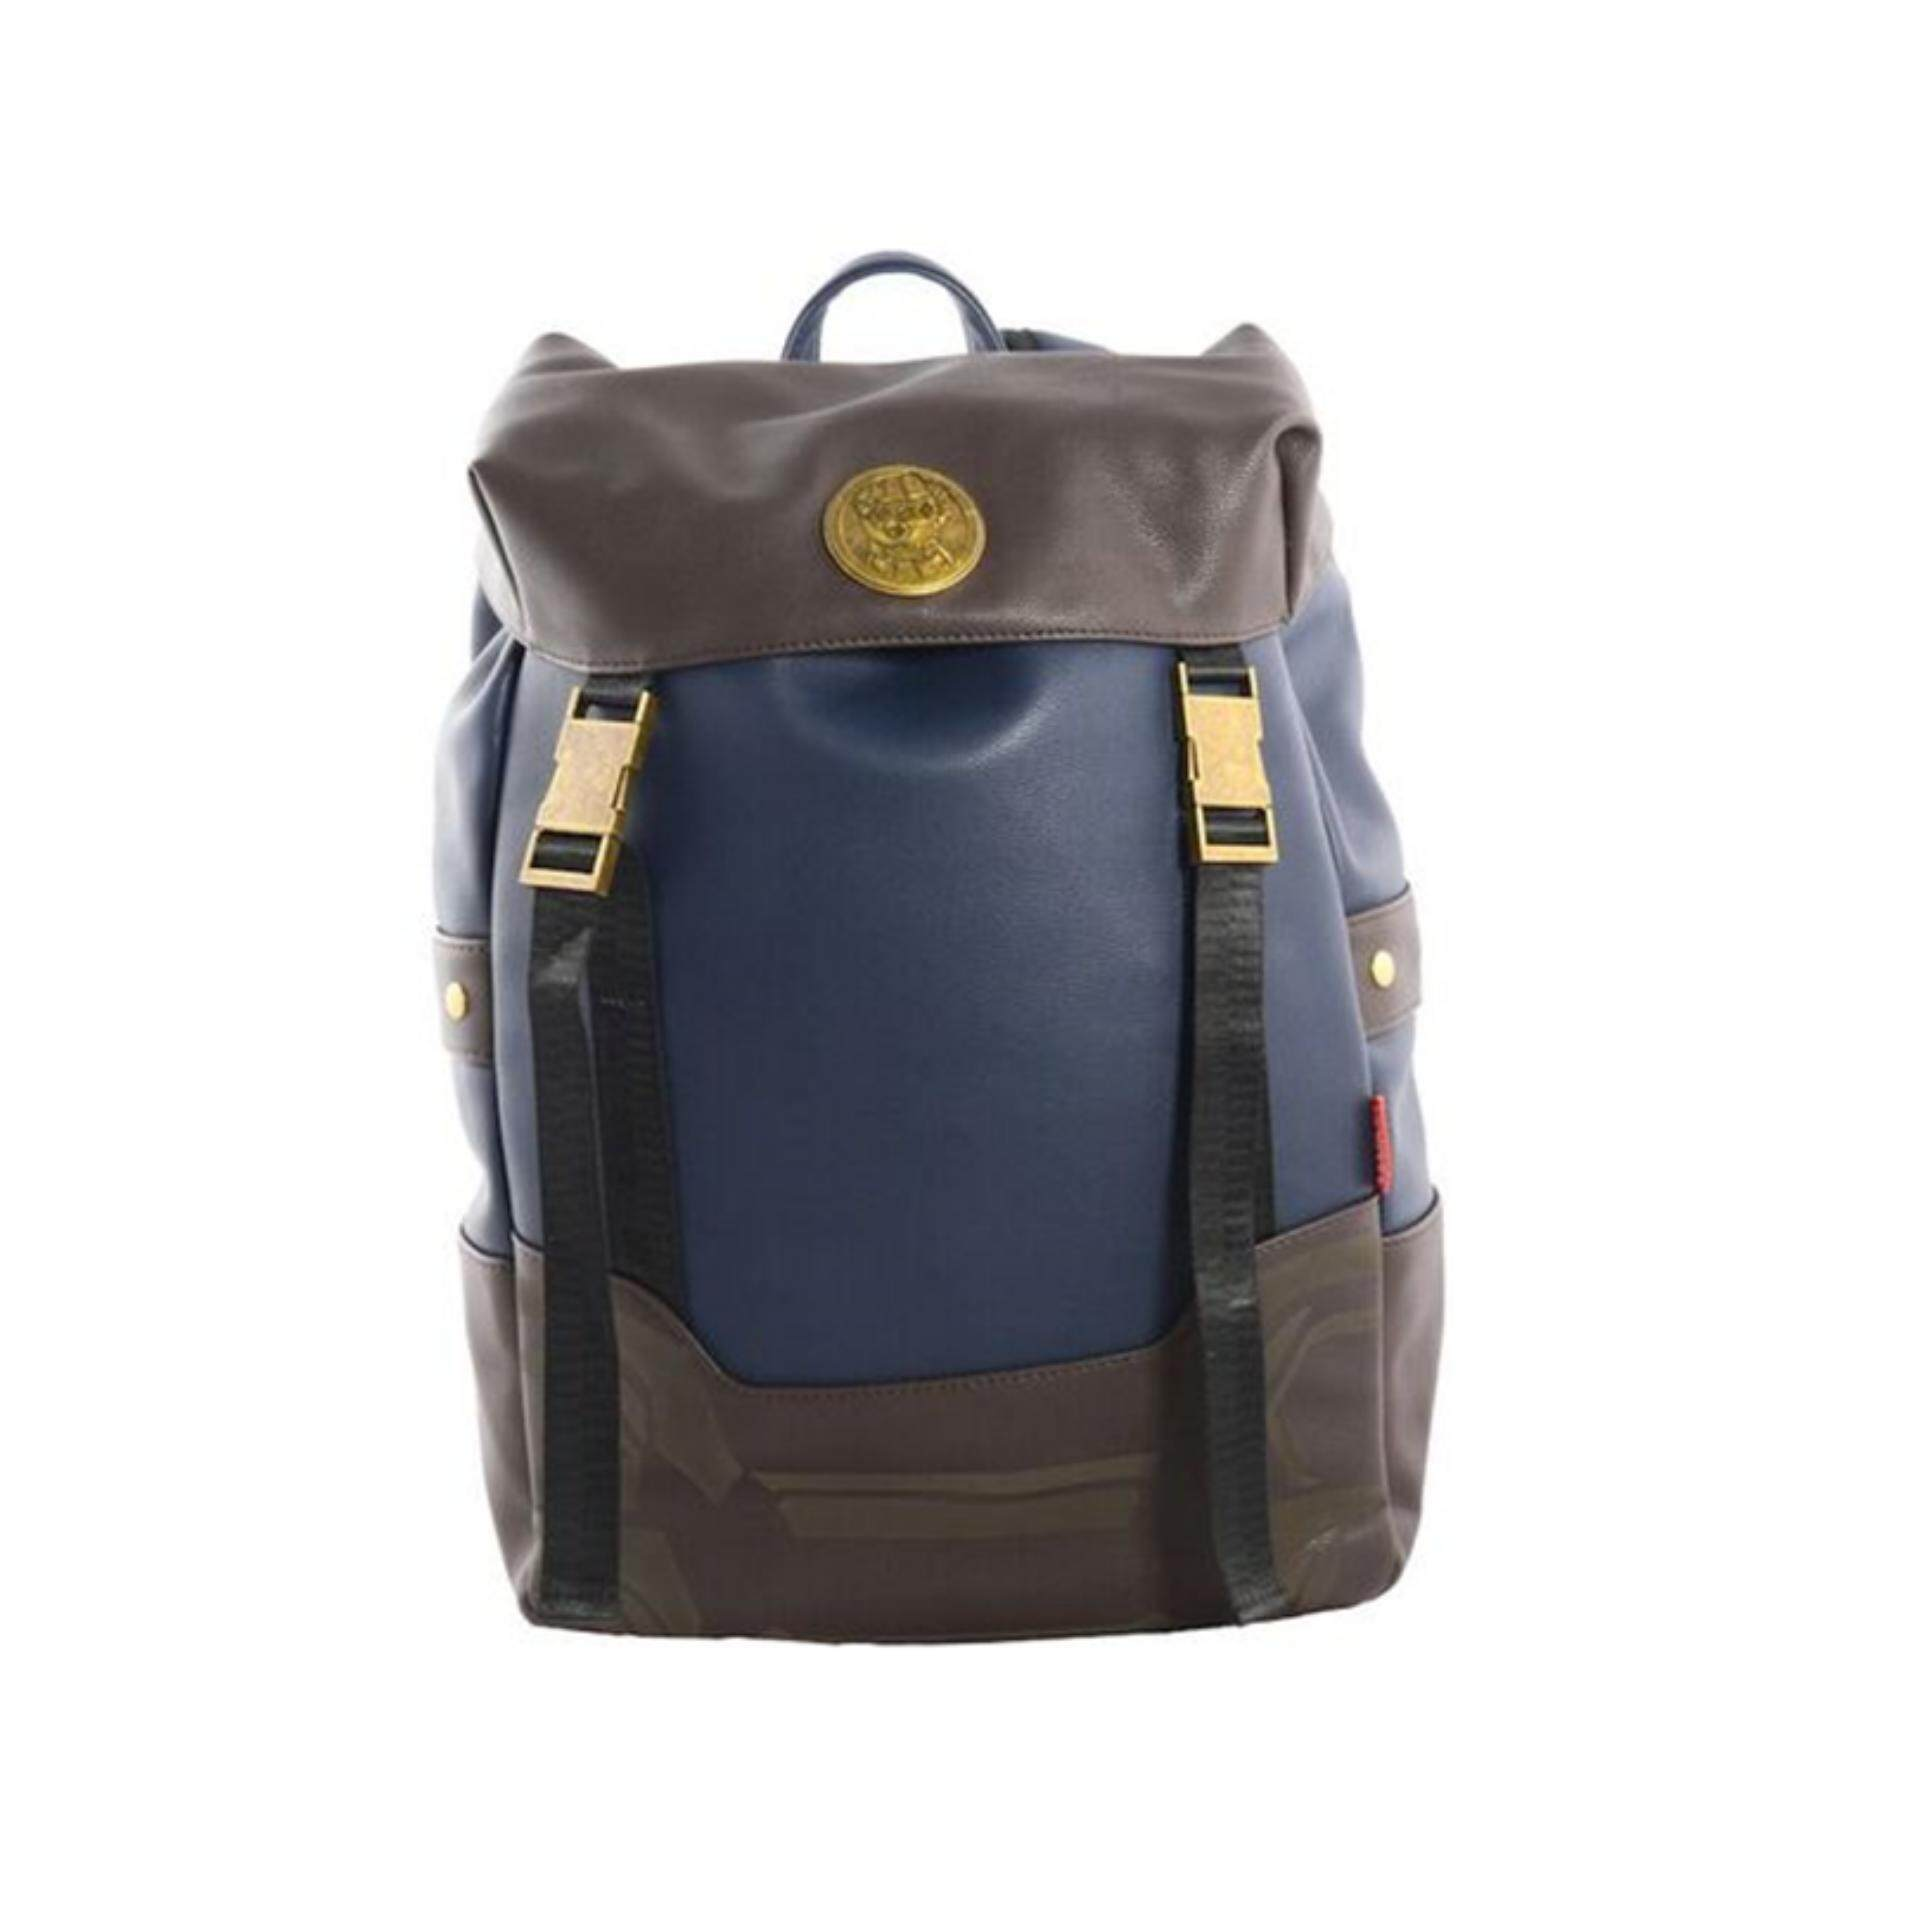 Marvel Avengers Infinity War Backpack 18 Inches - Dark Brown Colour